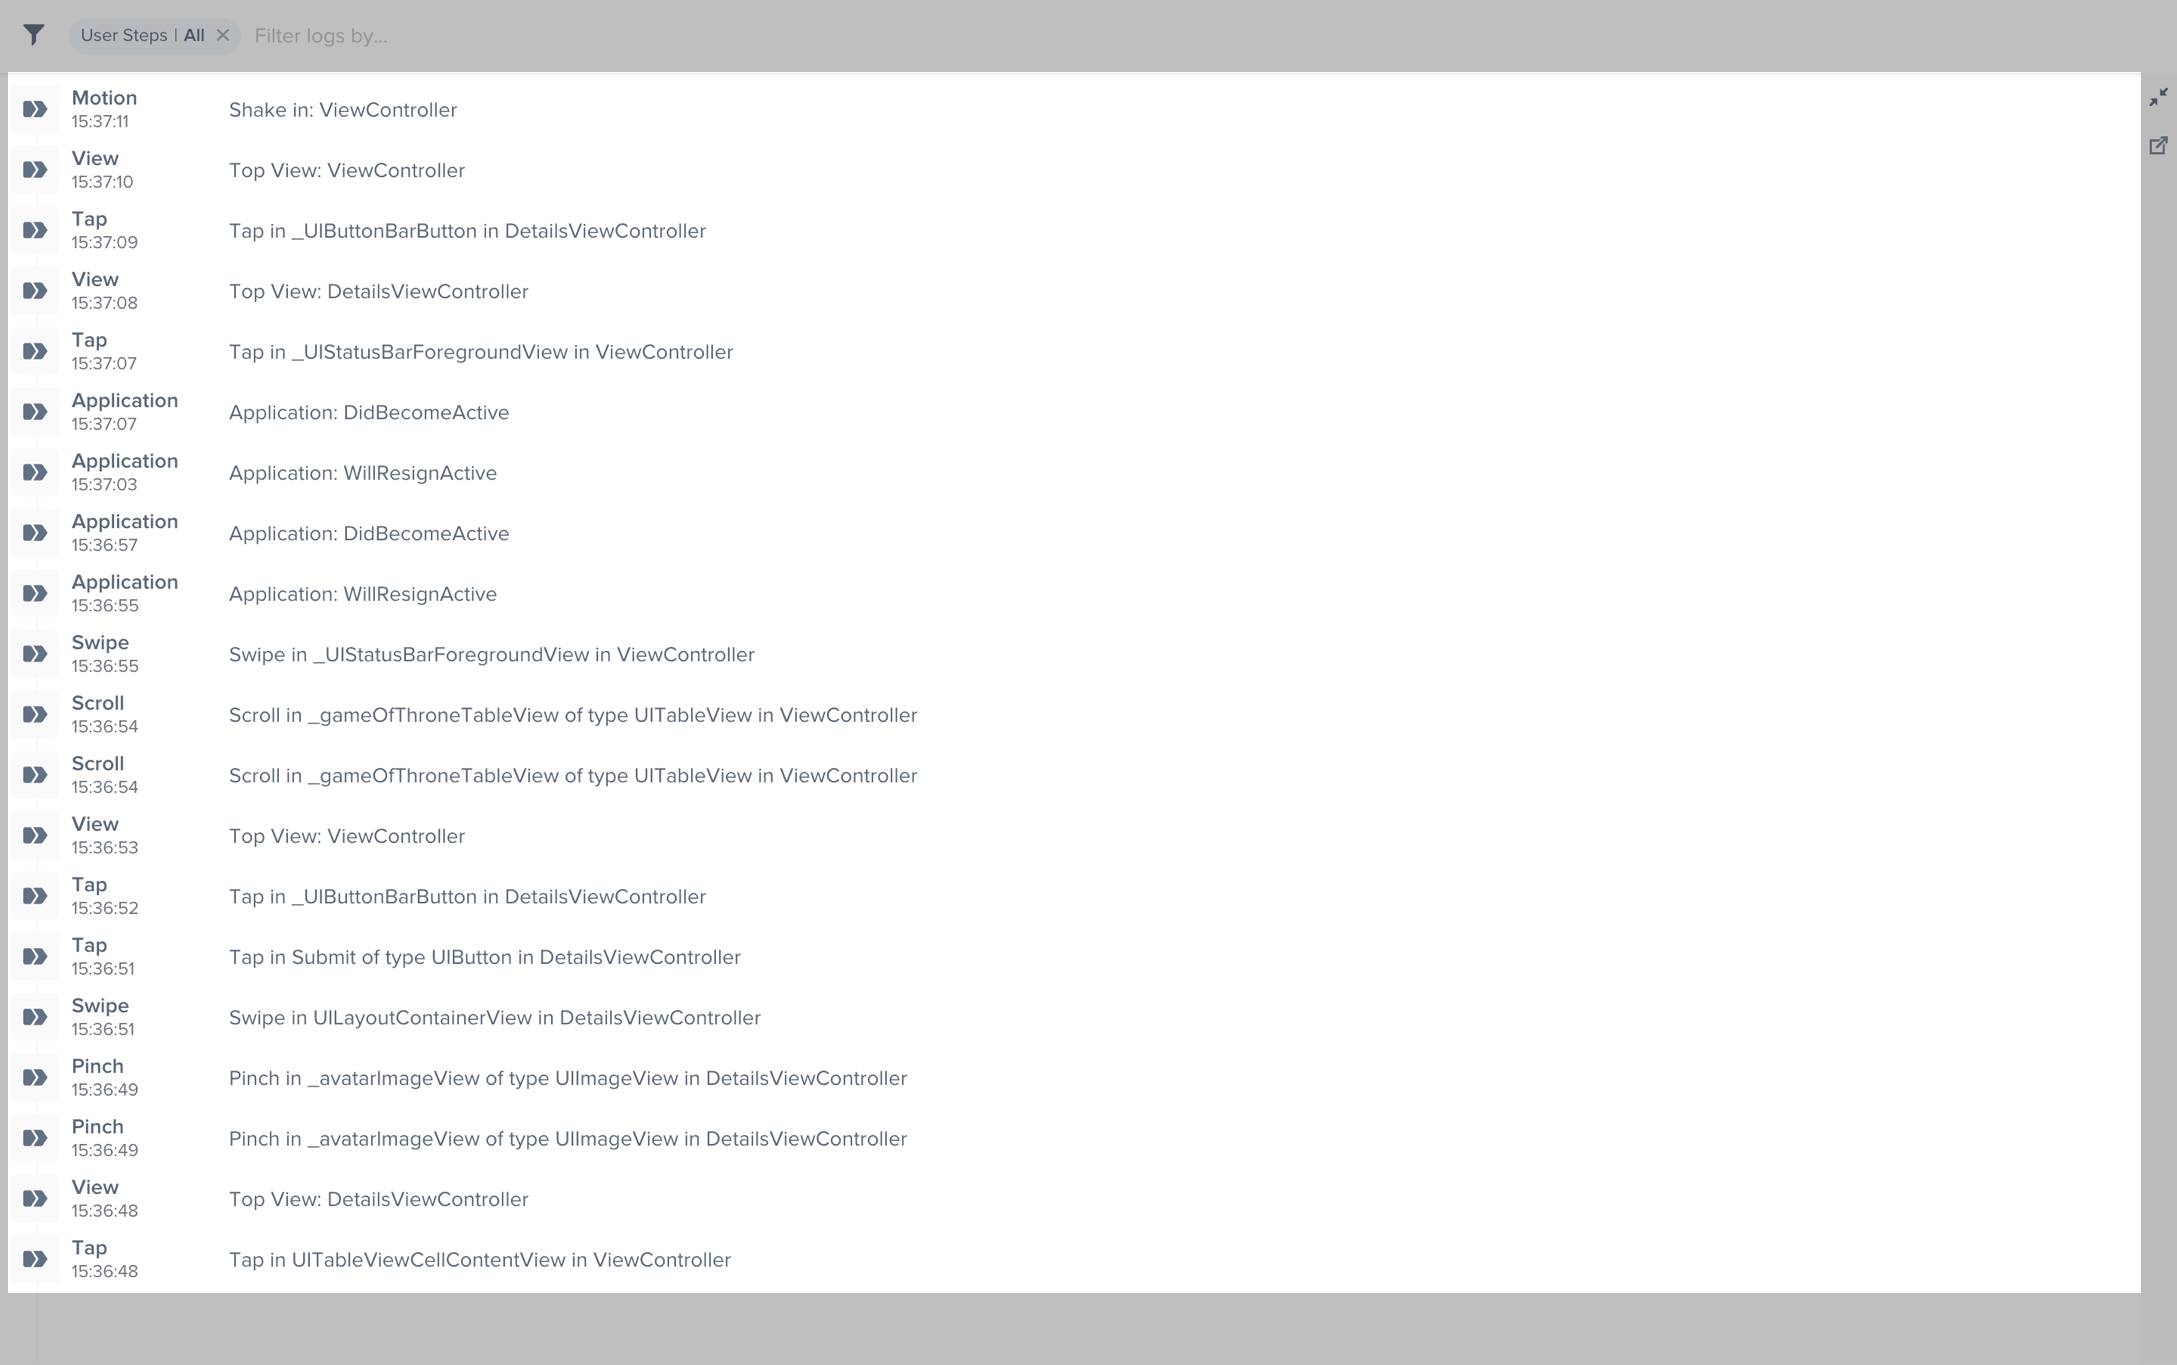 An example of the expanded logs view filtered by User Steps.